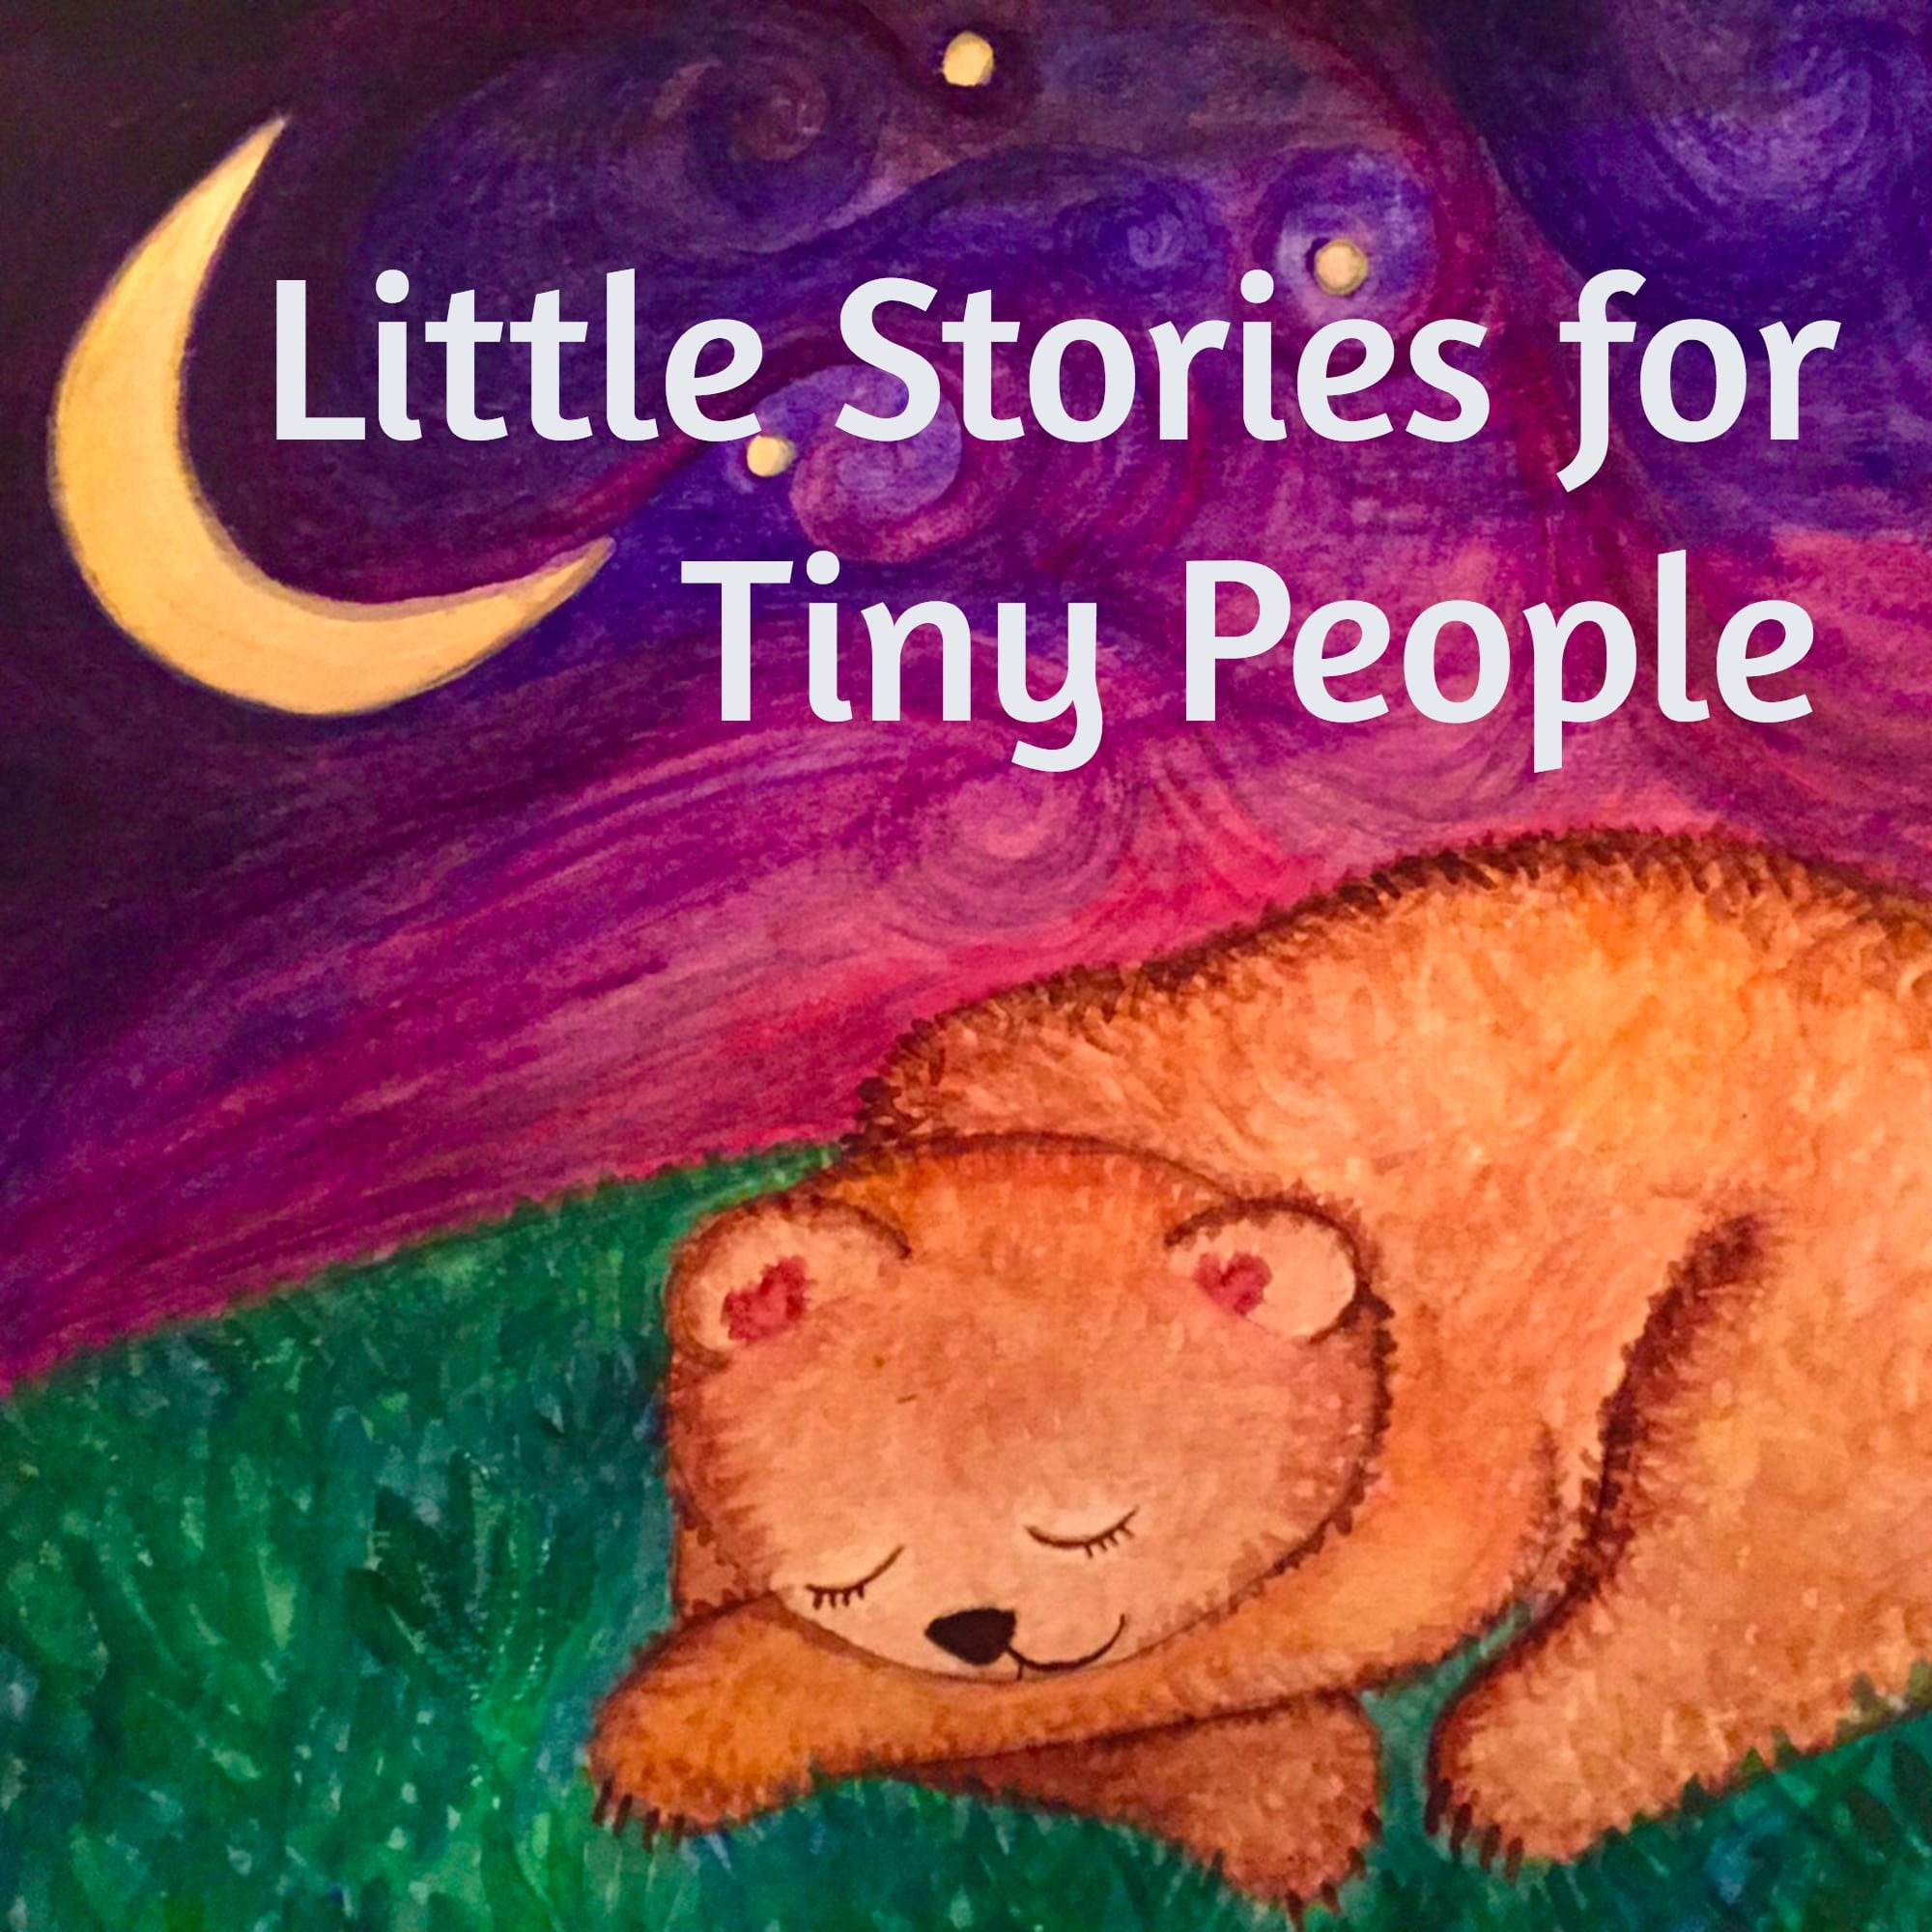 Little Stories for Tiny People podcast logo